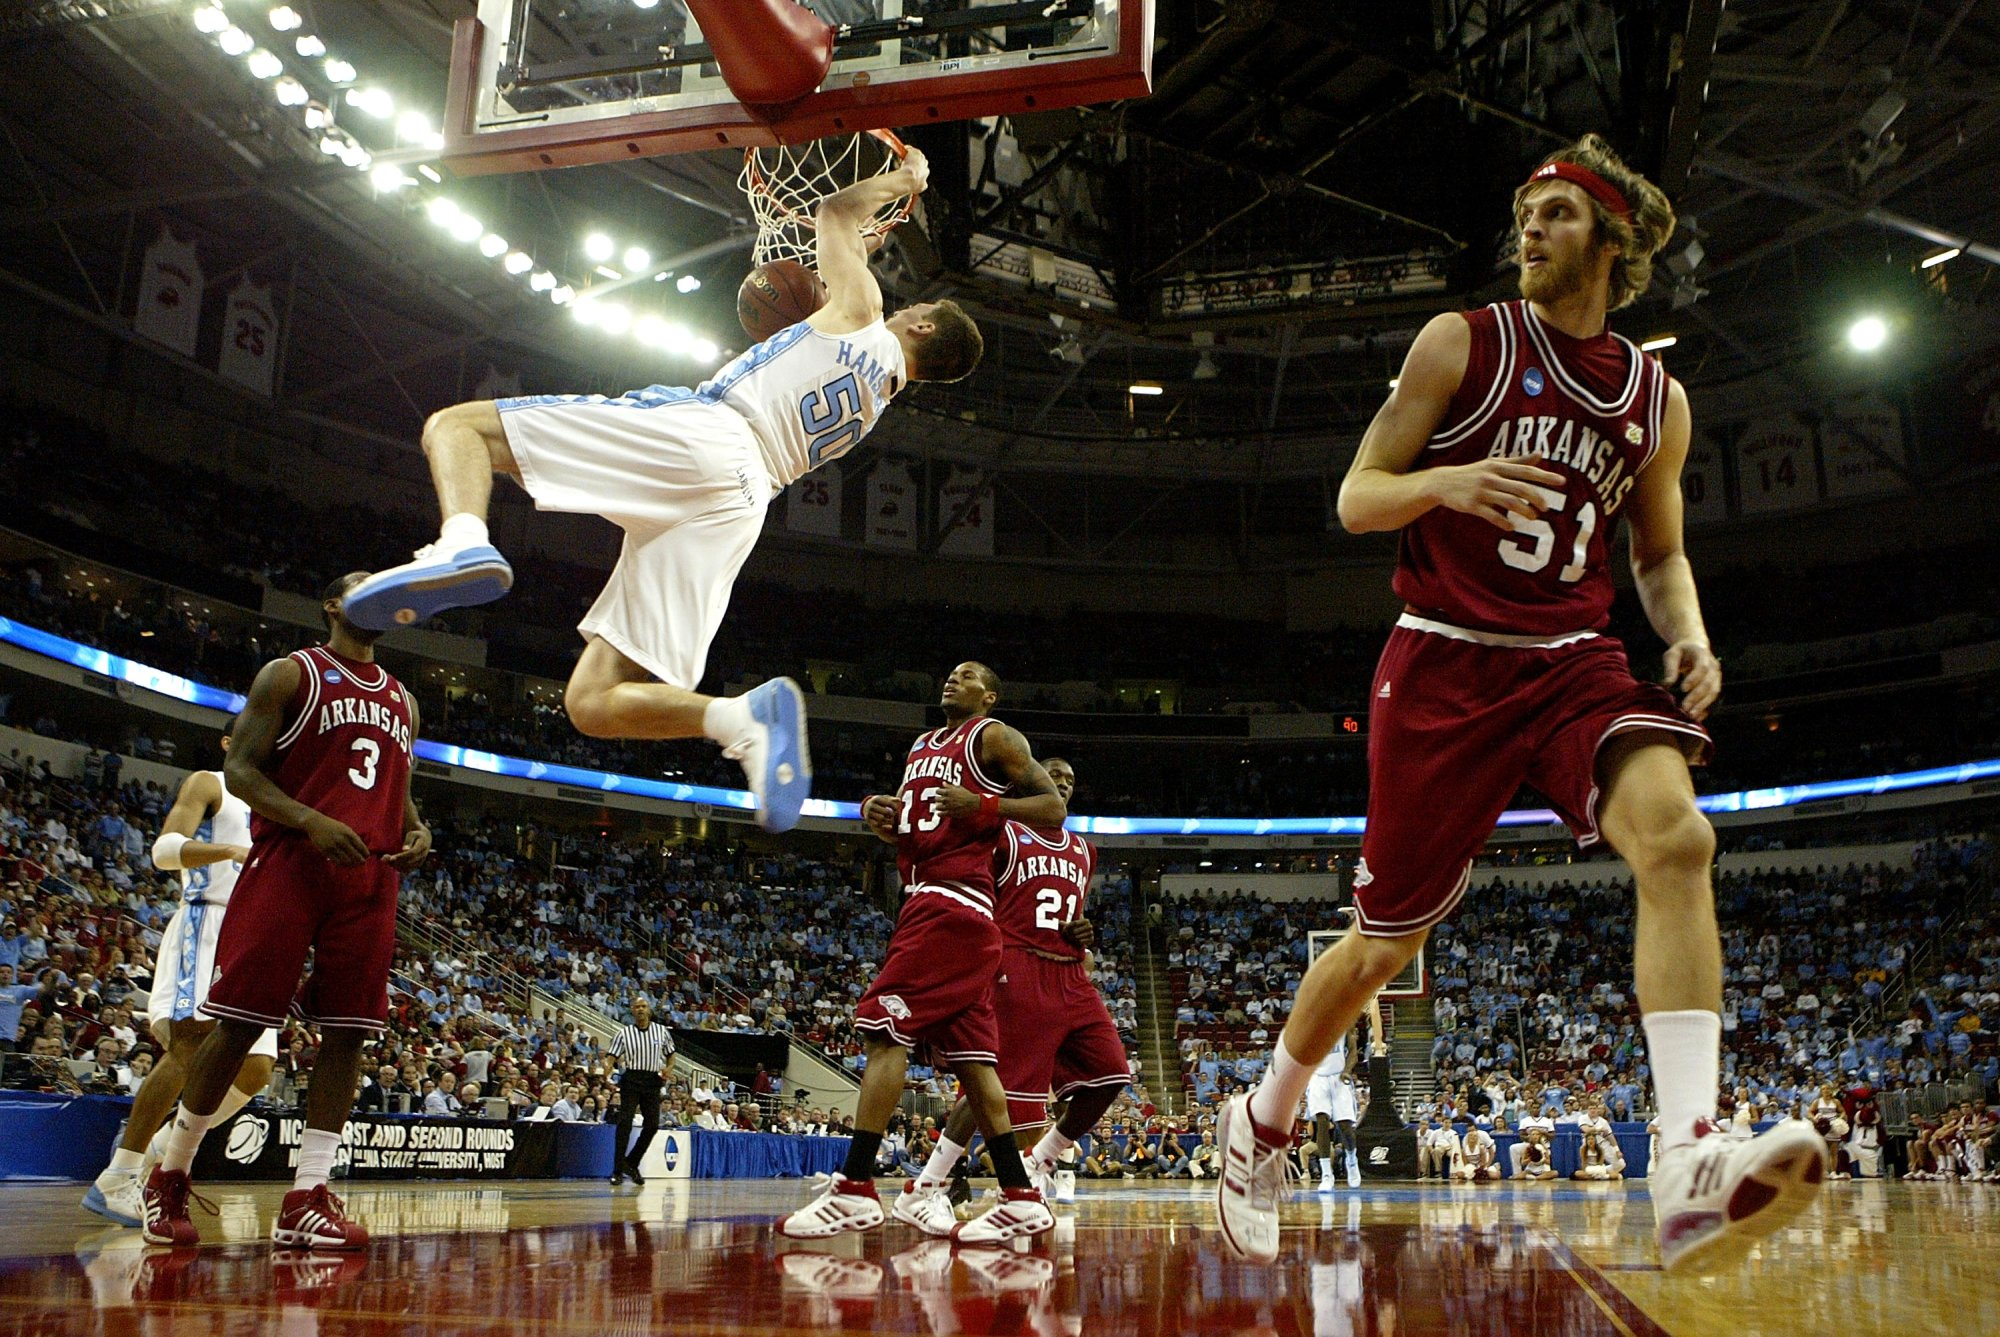 In Arkansas' last two tournament appearances, the Tar Heels have eliminated the Razorbacks.